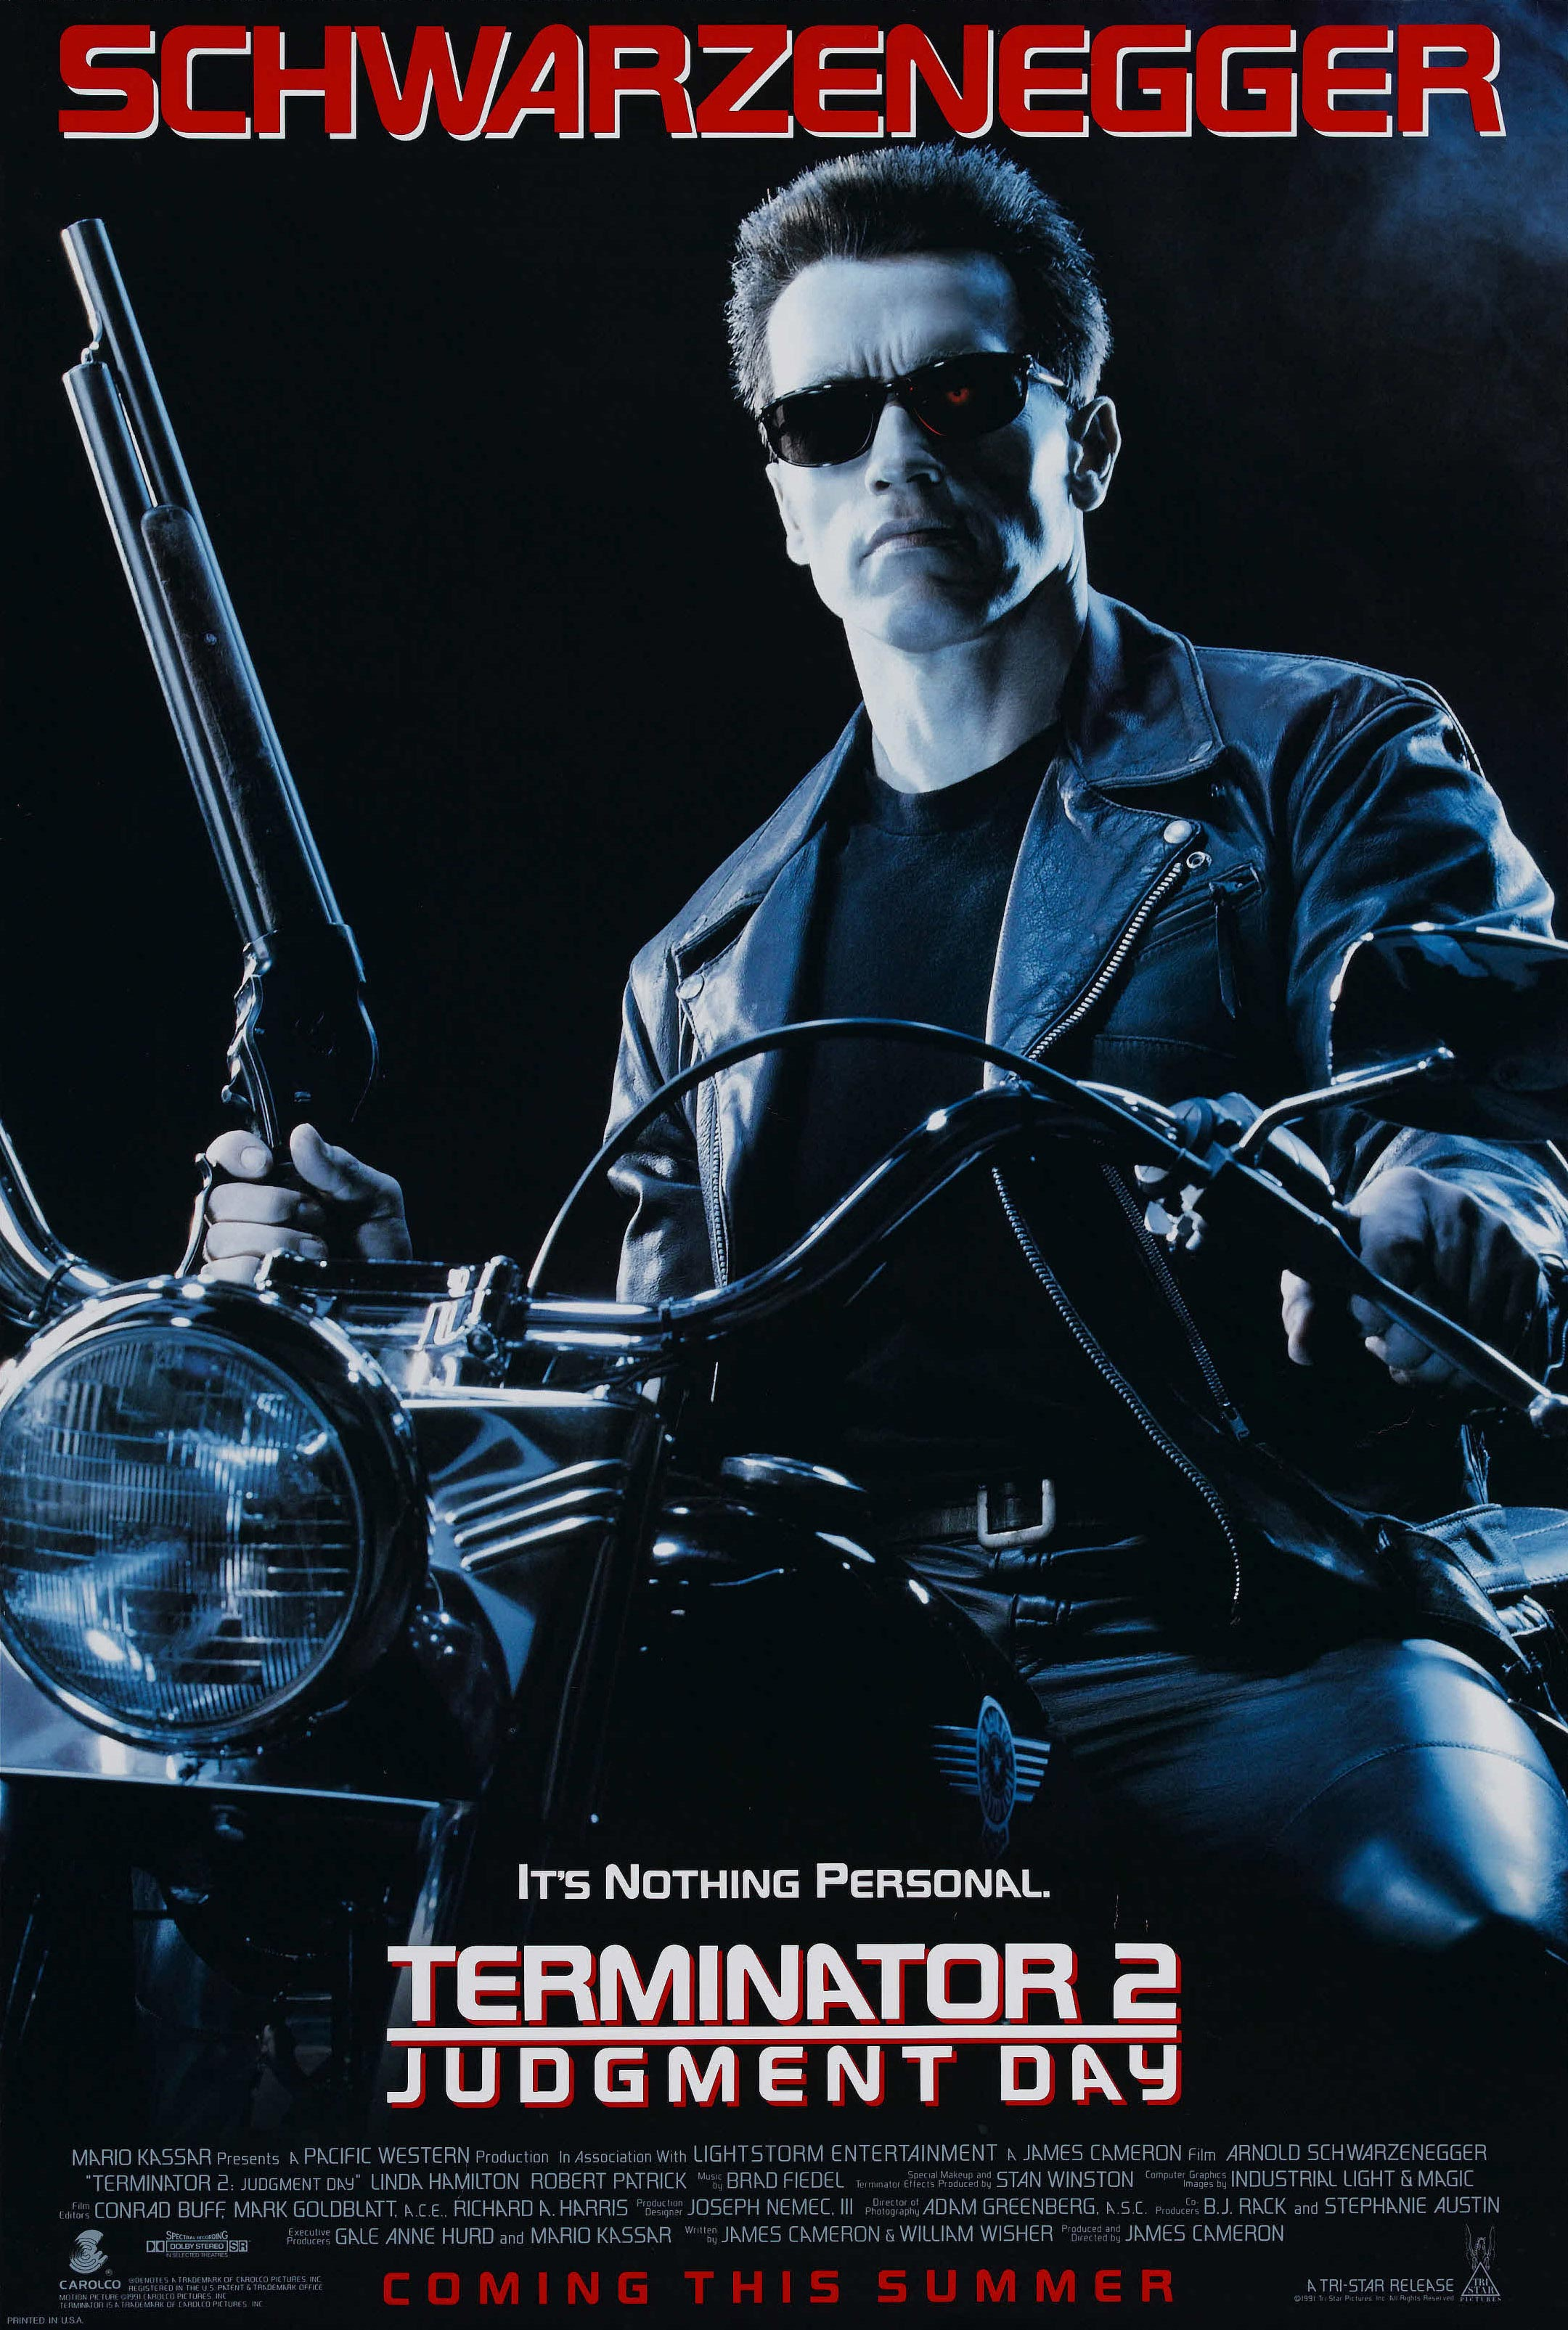 Terminator 2: Judgment Day (1991) BluRay 480p, 720p, 1080p & 4K-2160p